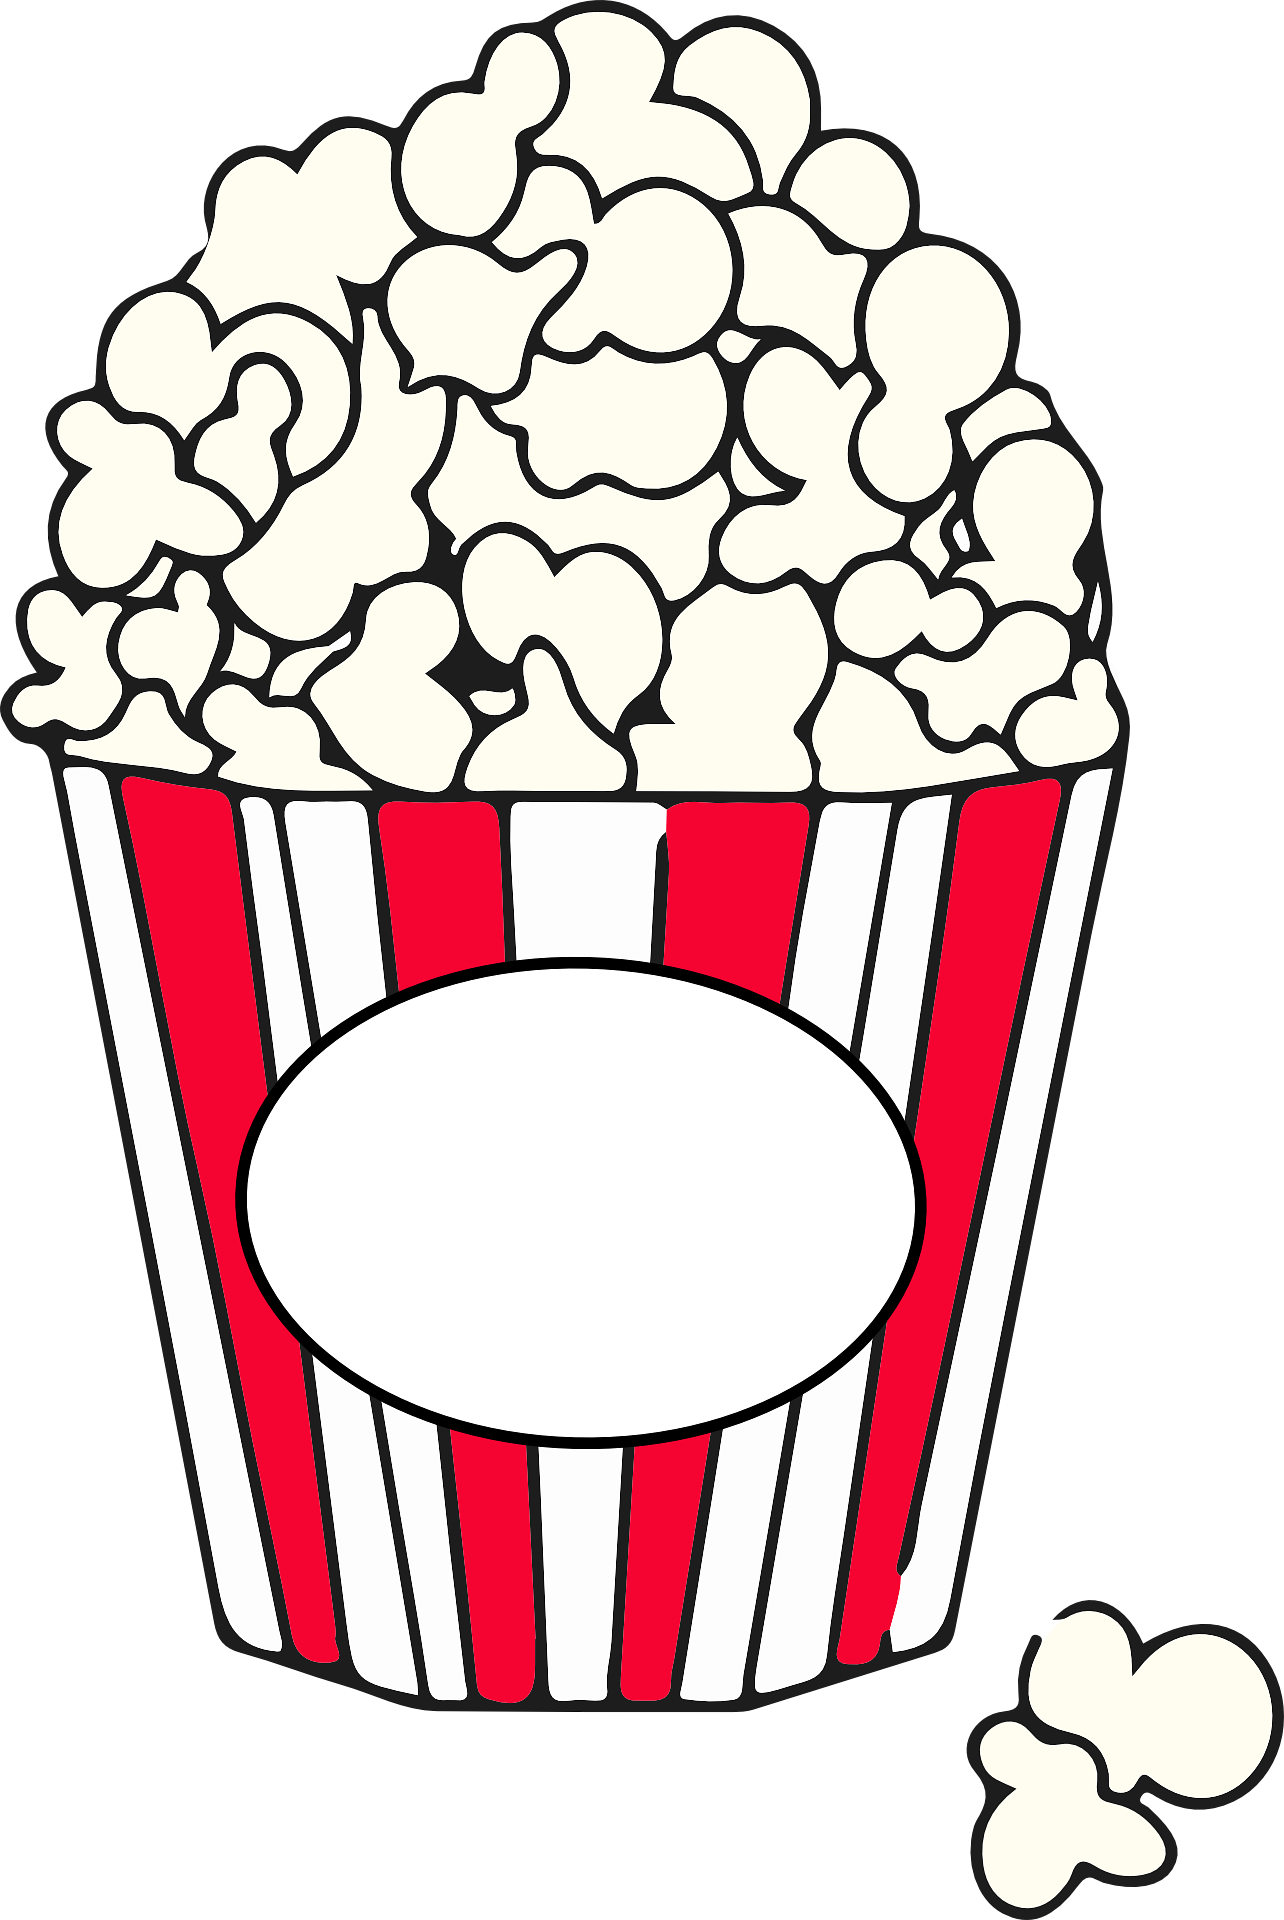 Cartoon image of popcorn